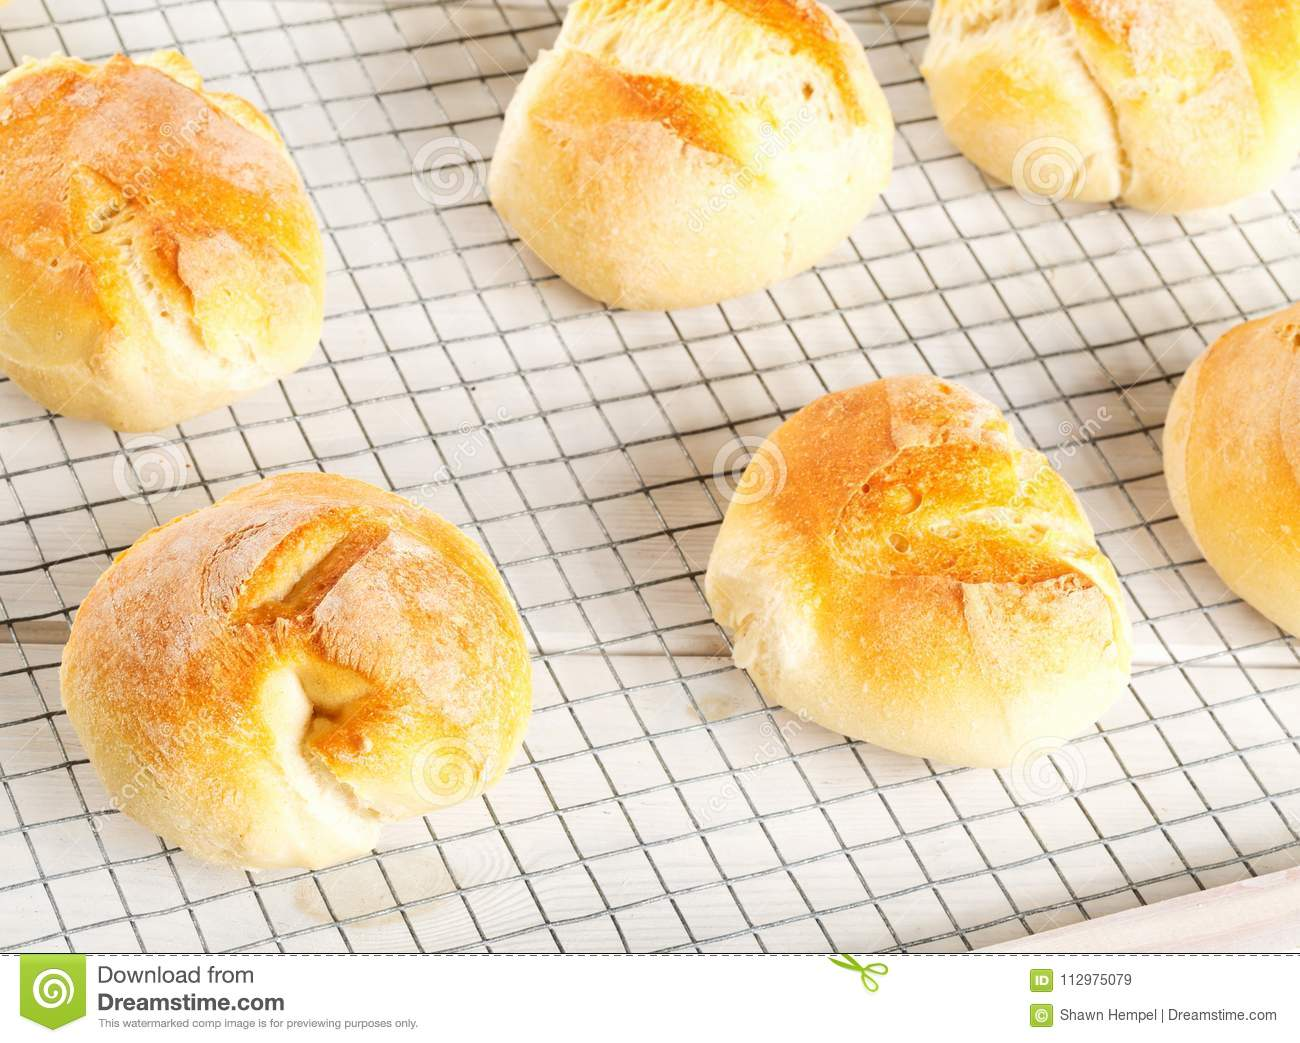 Bunch of whole, fresh baked wheat buns on cooling rack on white